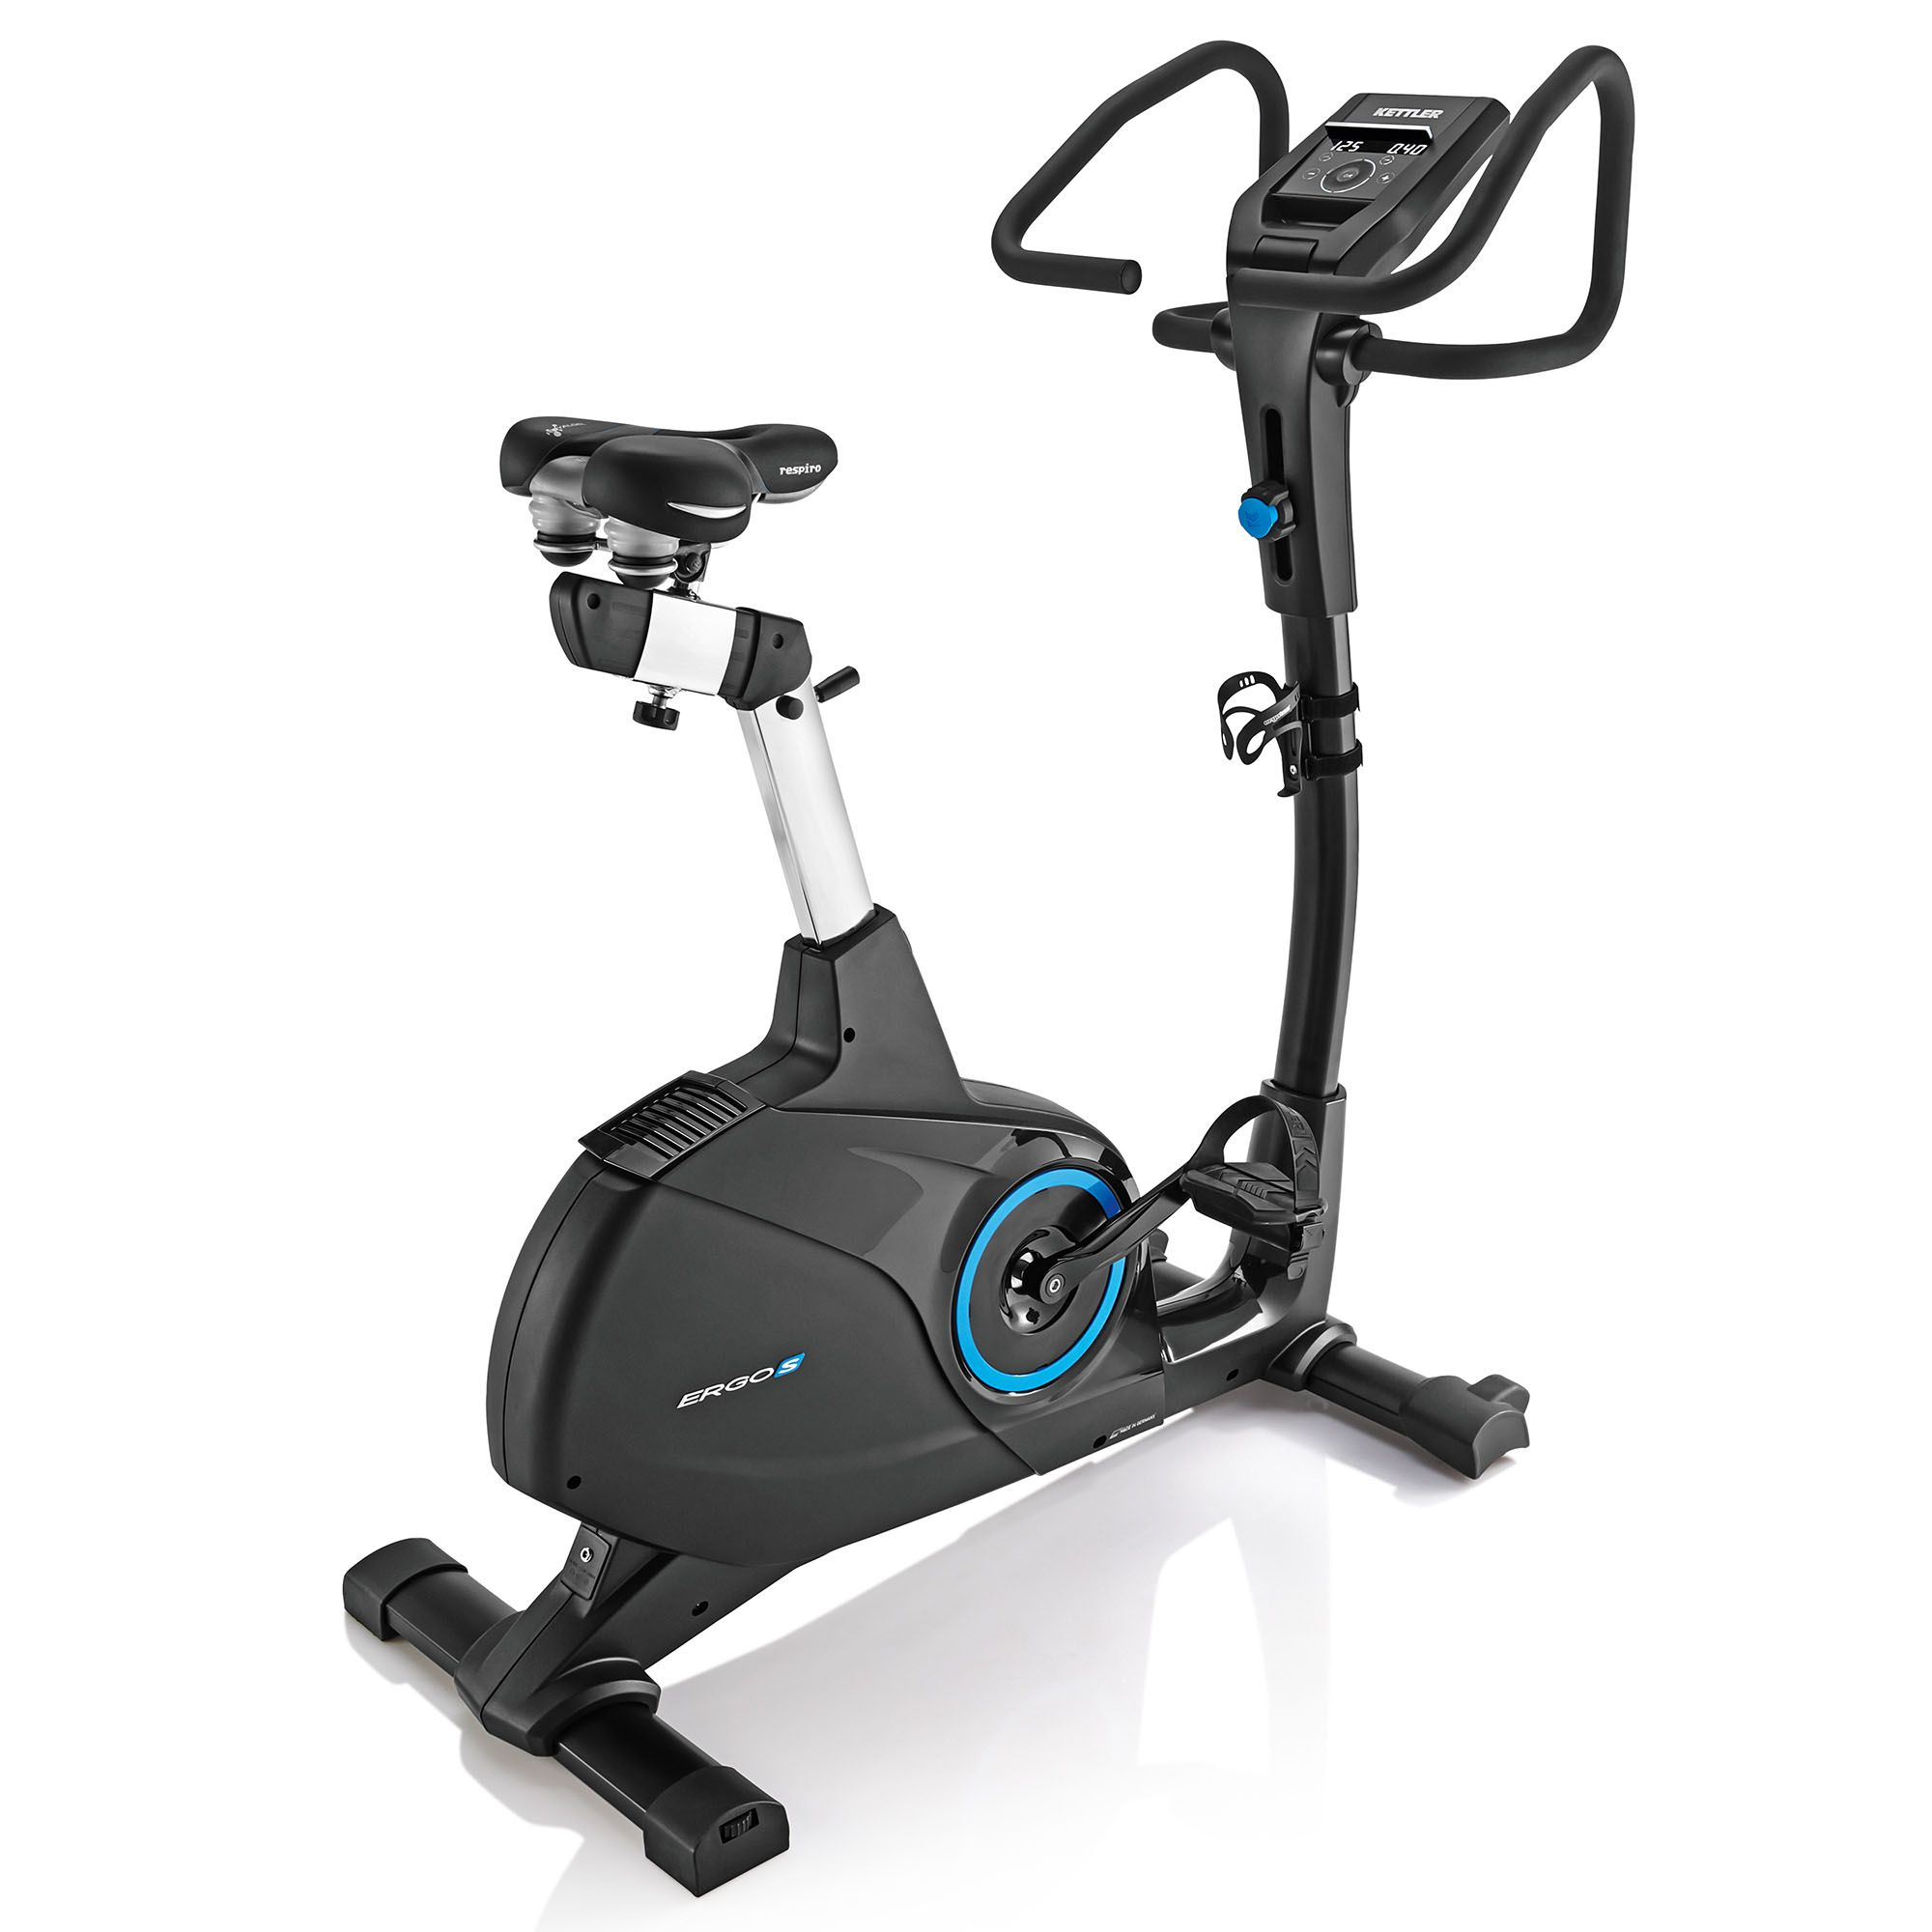 Kettler Fitness Kettler Ergo S Exercise Bike Sweatband